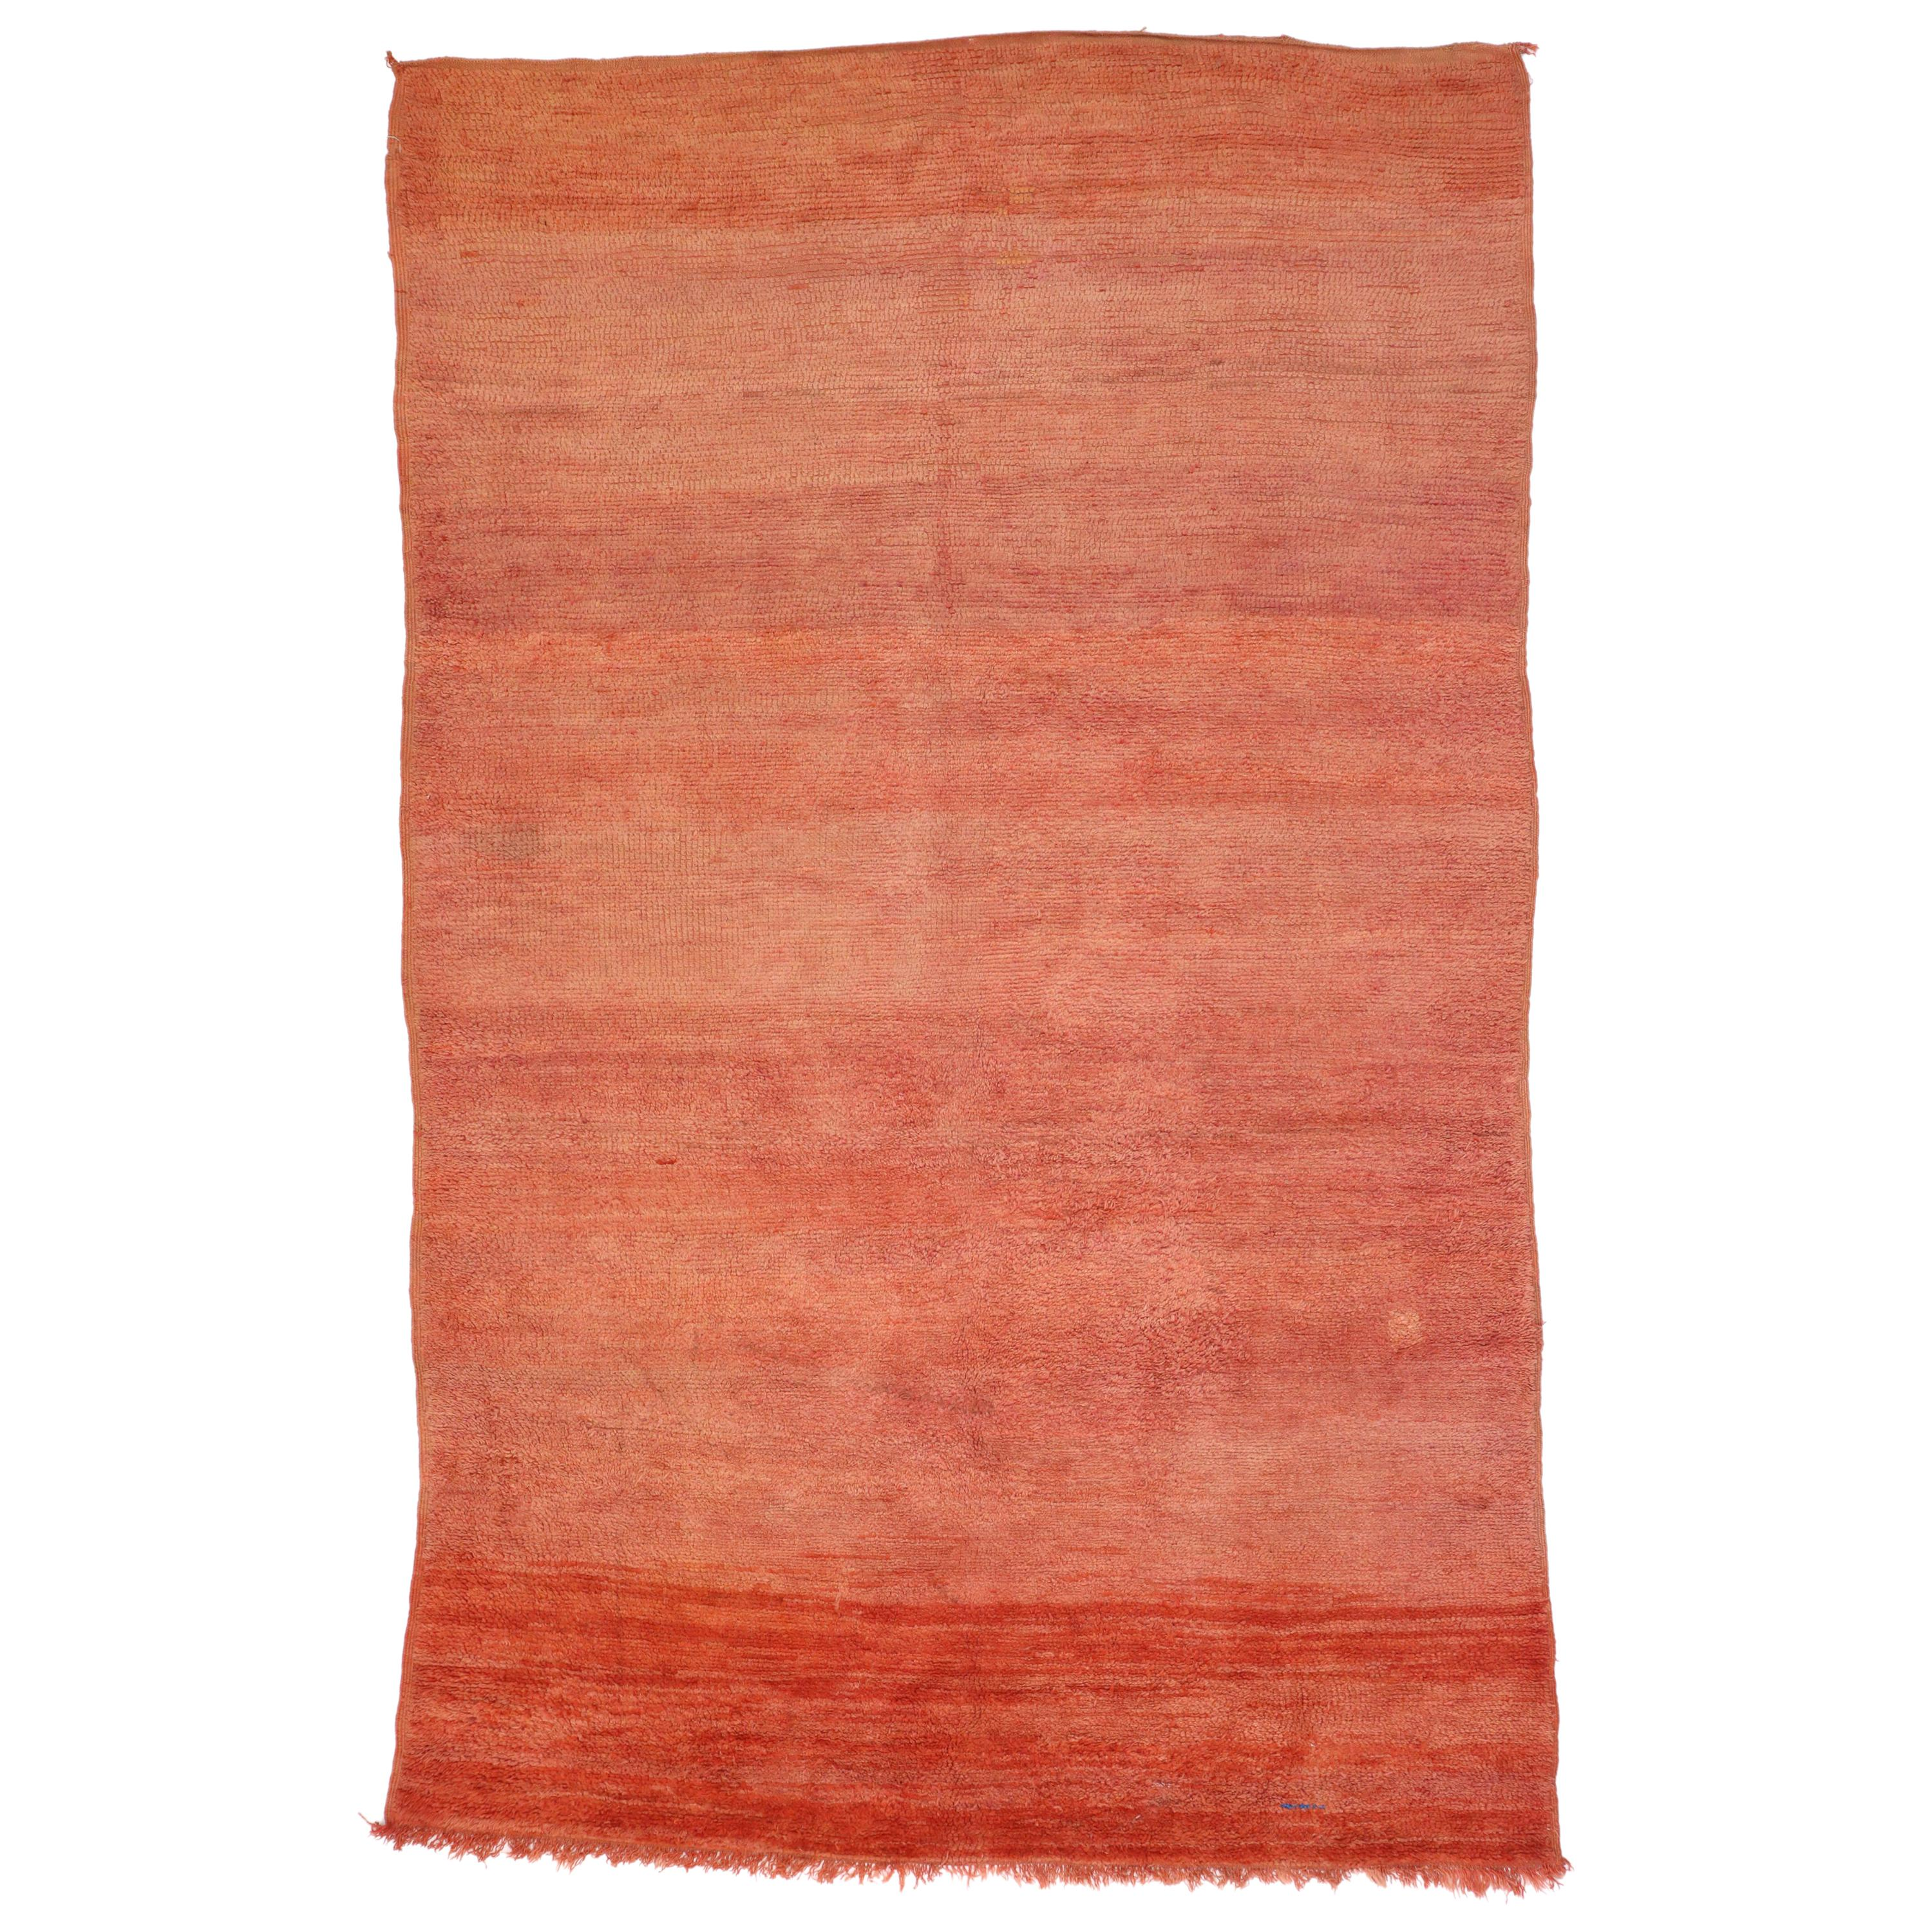 Vintage Berber Moroccan Rug, Red Moroccan Rug with Ombre Effect